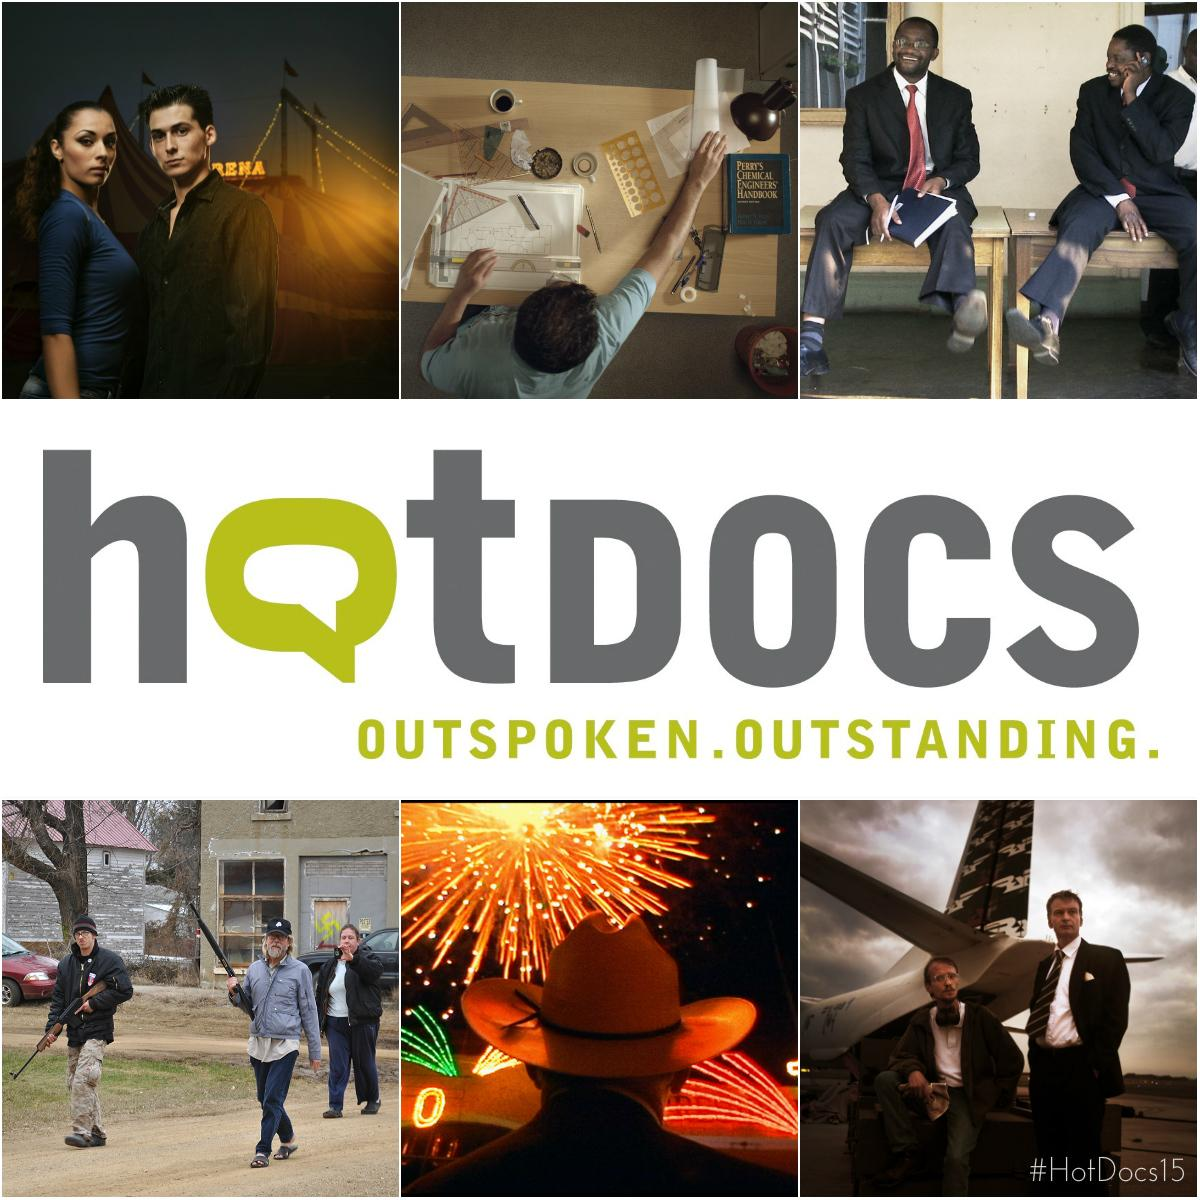 Here's your first look at #HotDocs15 films: http://t.co/f2veT7zWd5 http://t.co/ME1ux8dj60